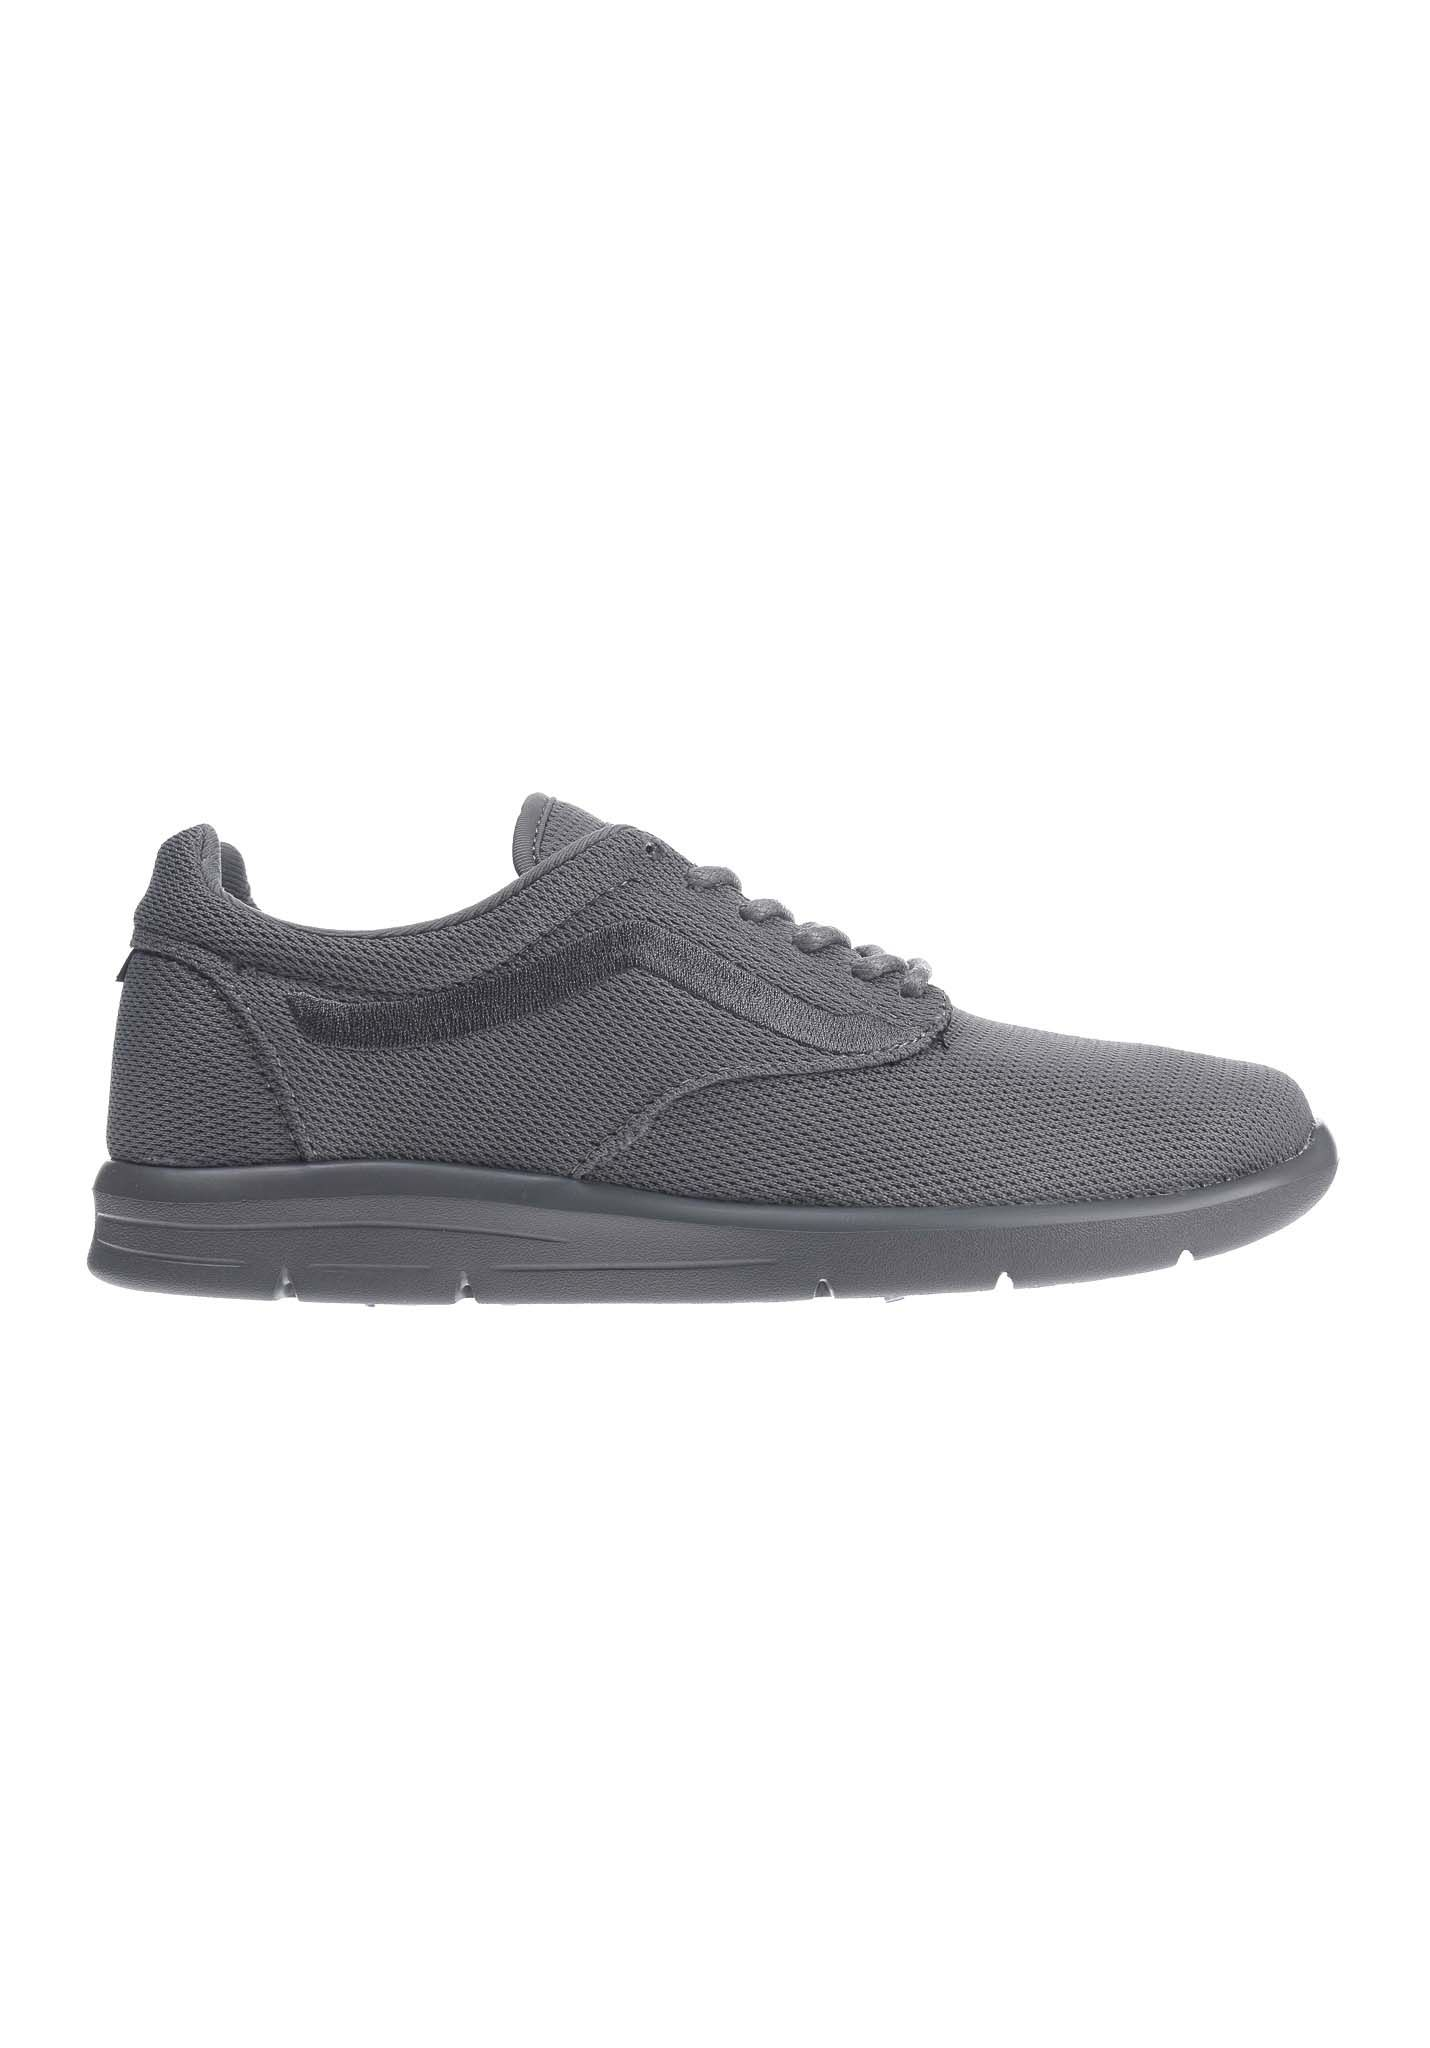 e72ef9f2c996 Vans Iso 1.5 + - Sneakers - Grey - Planet Sports